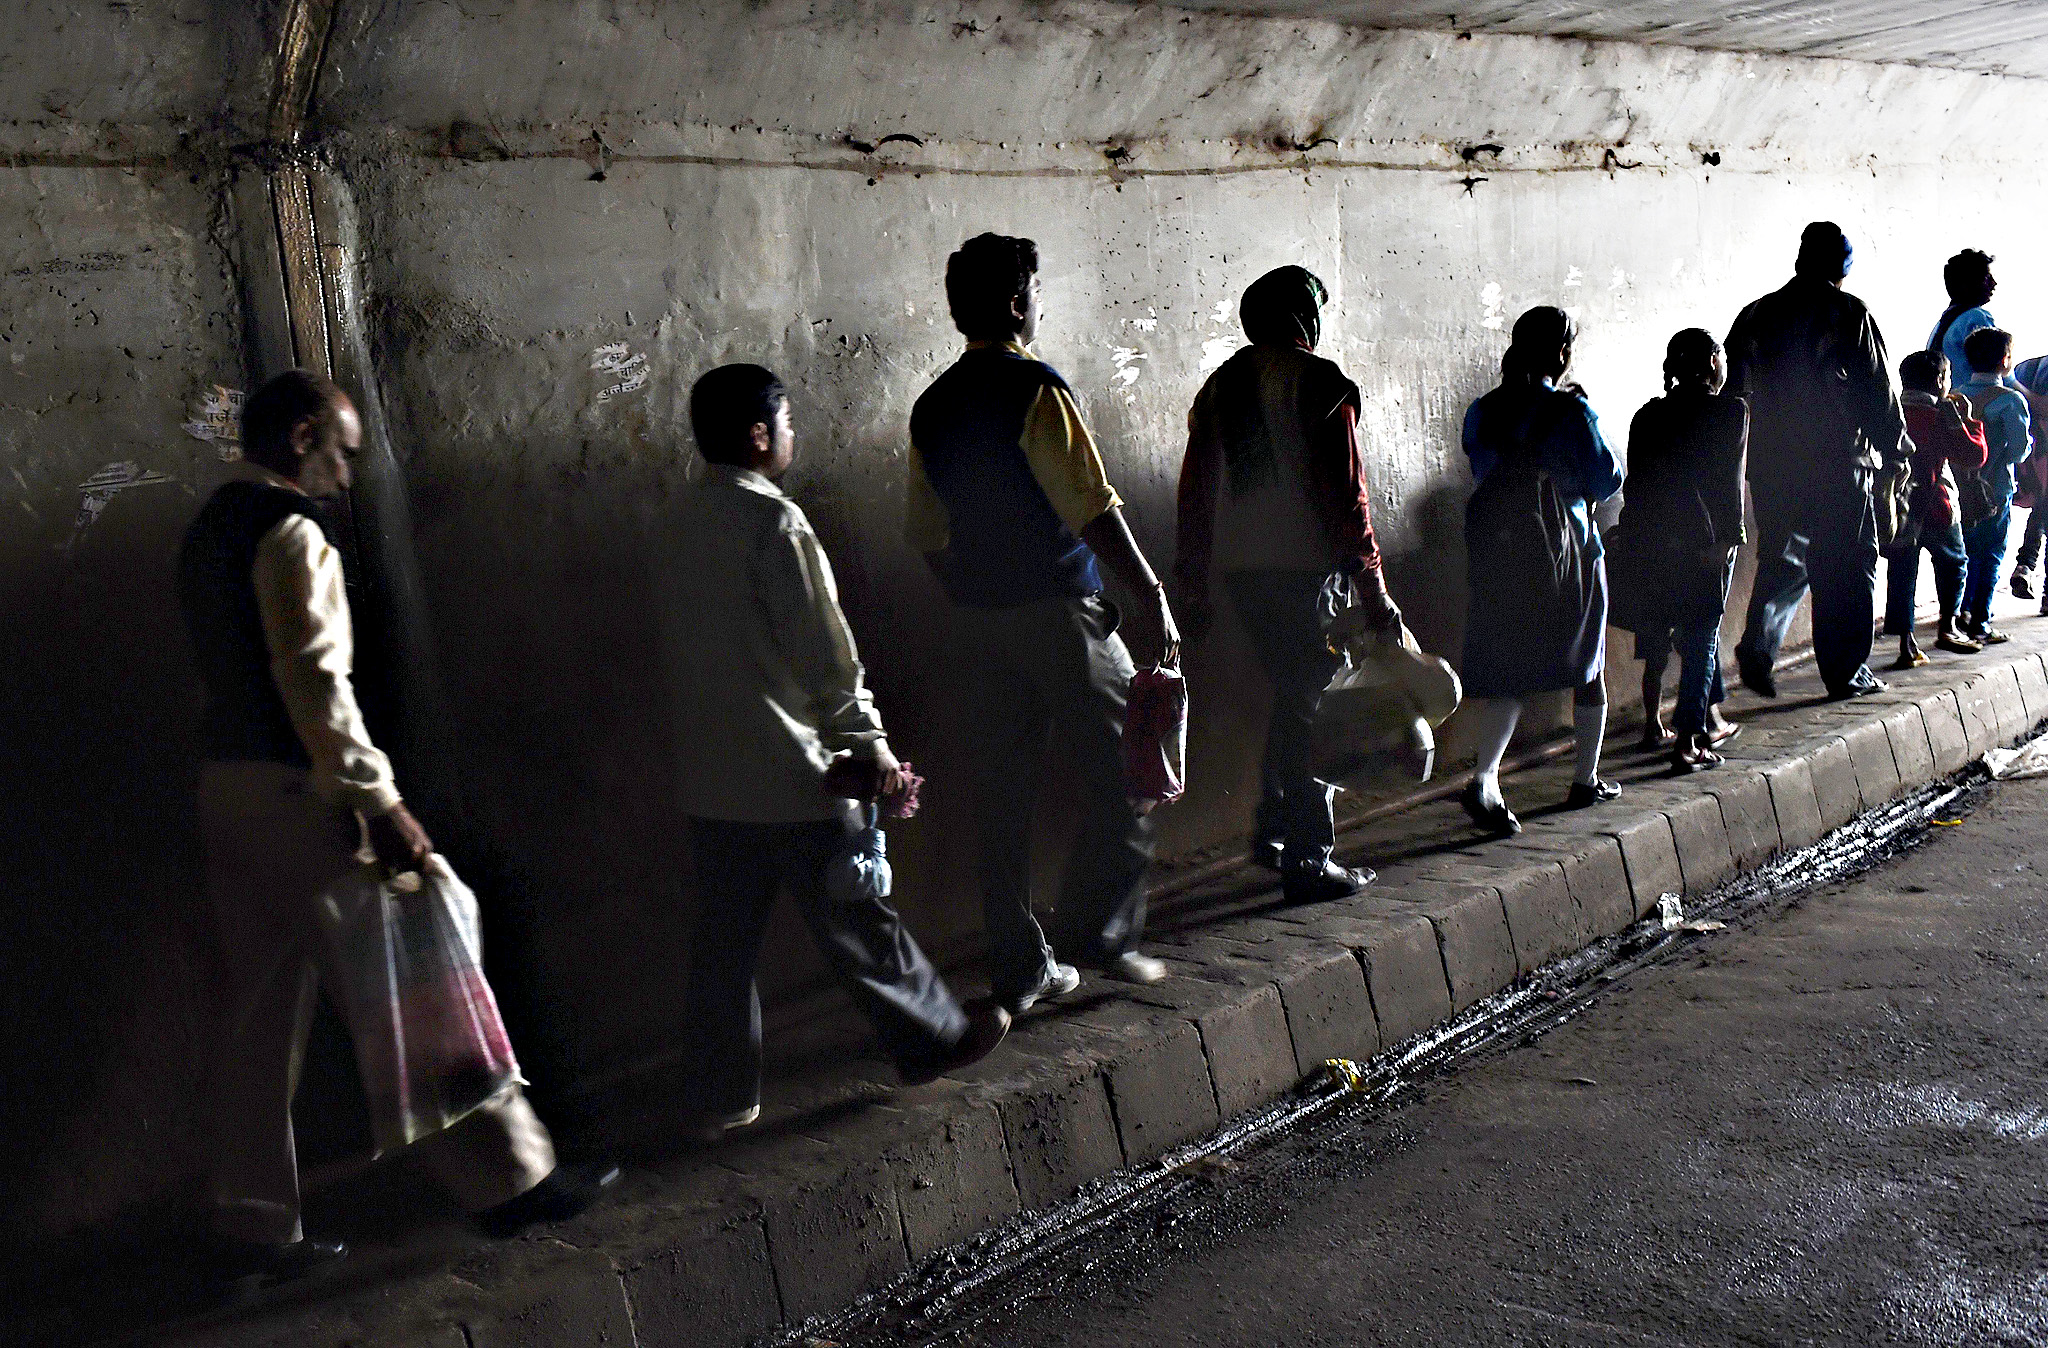 Indian commuters walk in an underpass connecting their neighborhood with a main thoroughfare past a train station in the early hours of the morning in New Delhi on March 10, 2015.  According to a report from the United Nations India's urban population numbers some 410 million people and this will grow to 814 million by 2050. The report from 2014 also states that India is projected to add the highest number of people to its urban population by 2050, ahead of China